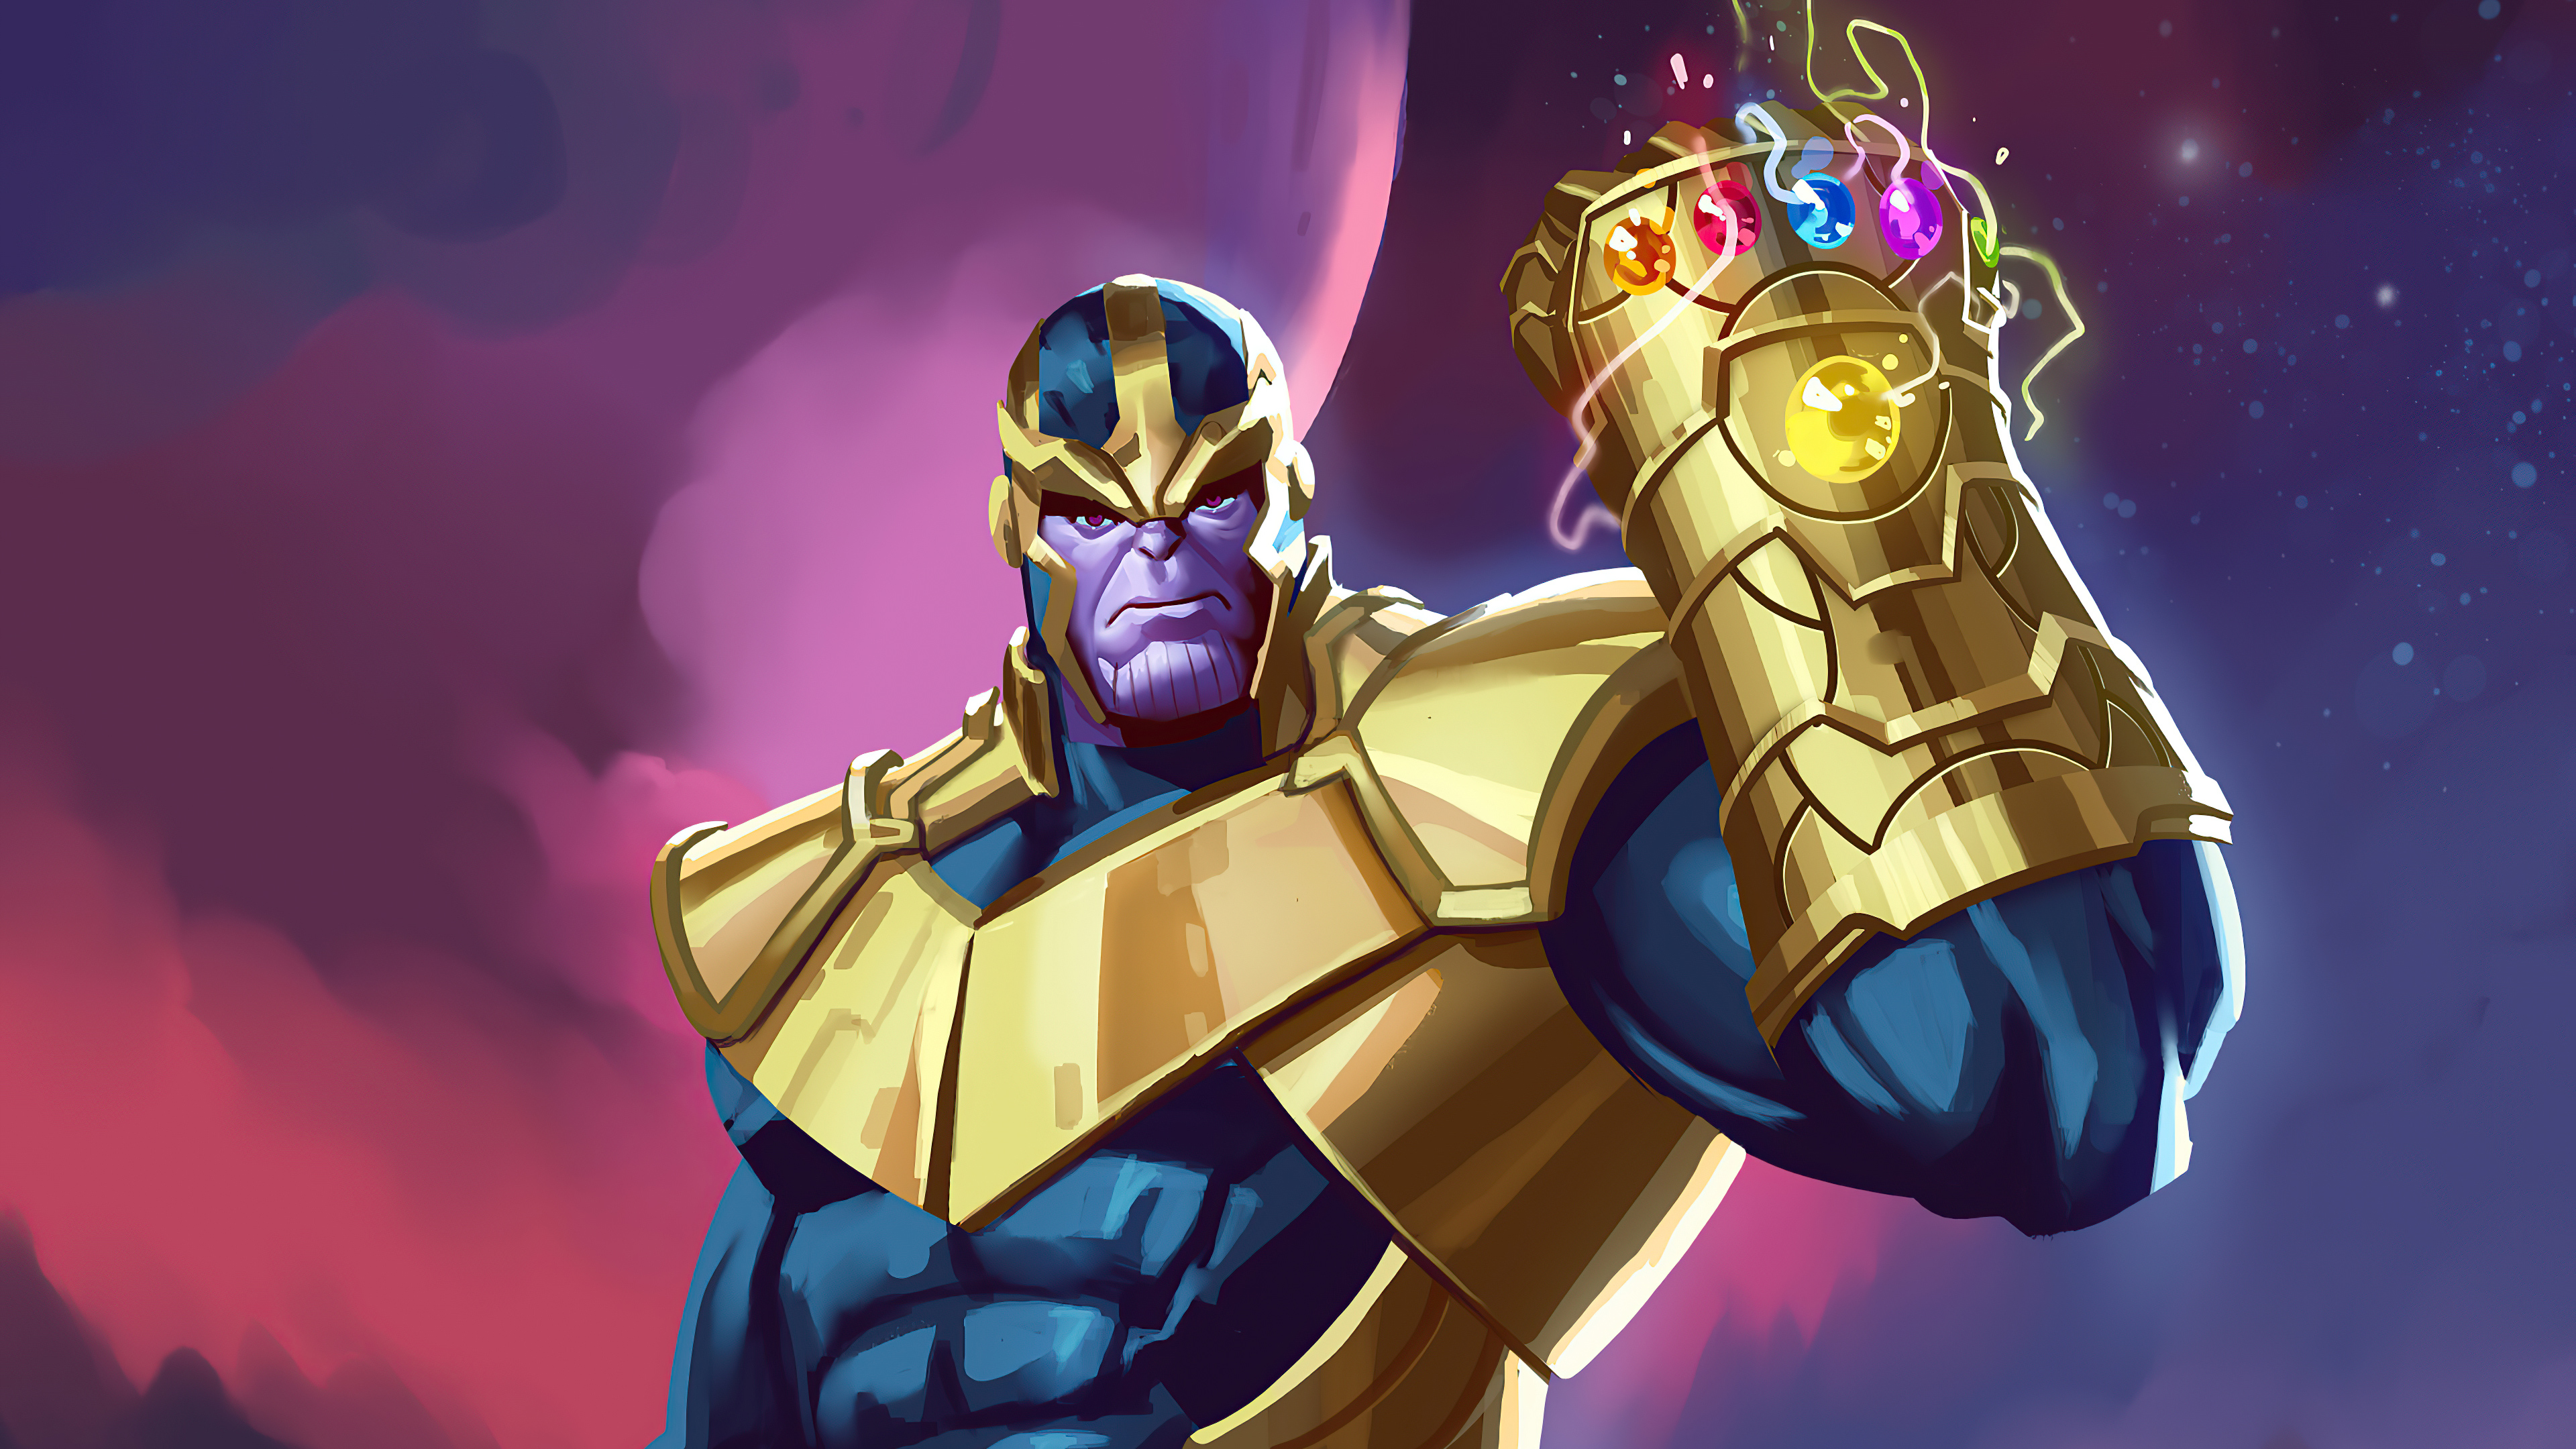 Wallpaper Thanos Artwork 2020